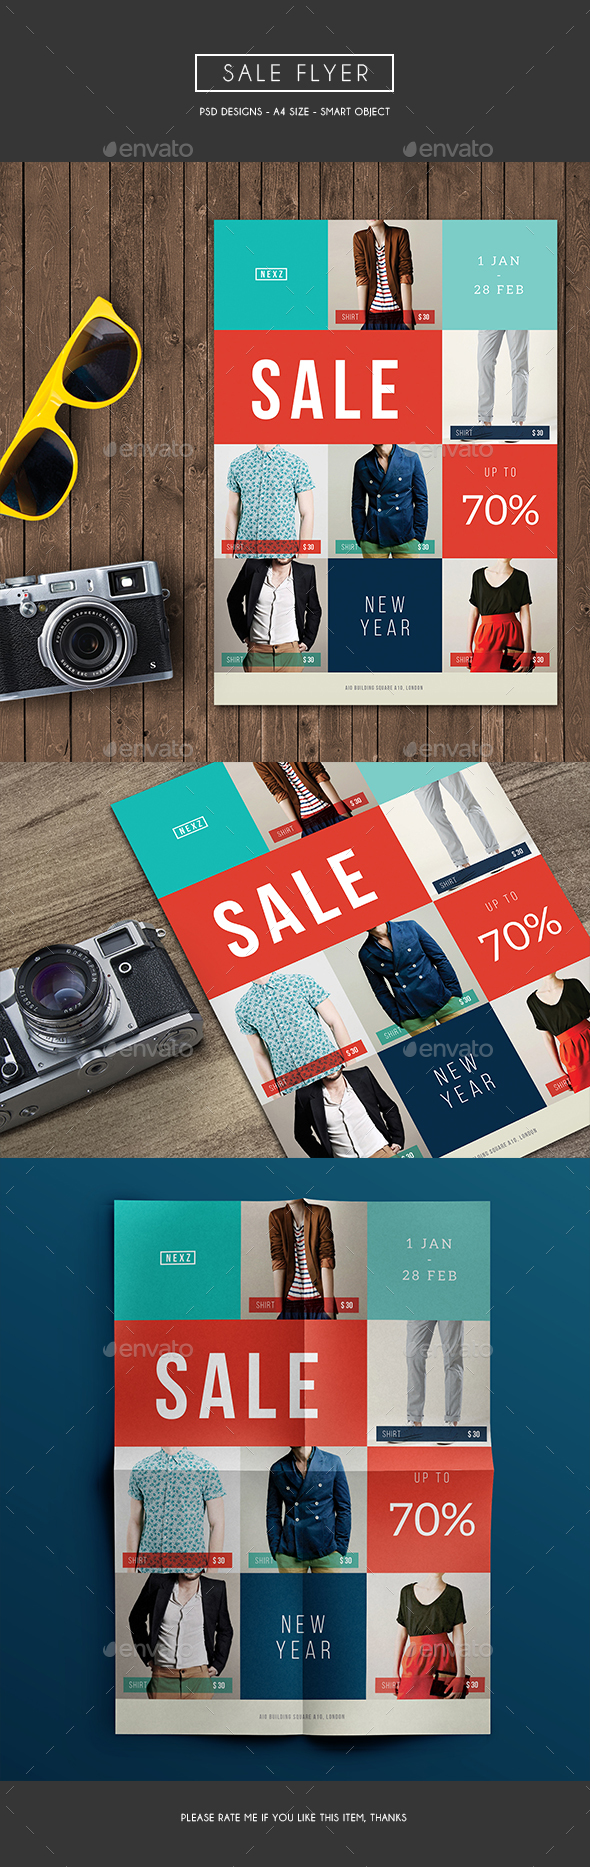 holiday sales flyer - Ecza.solinf.co